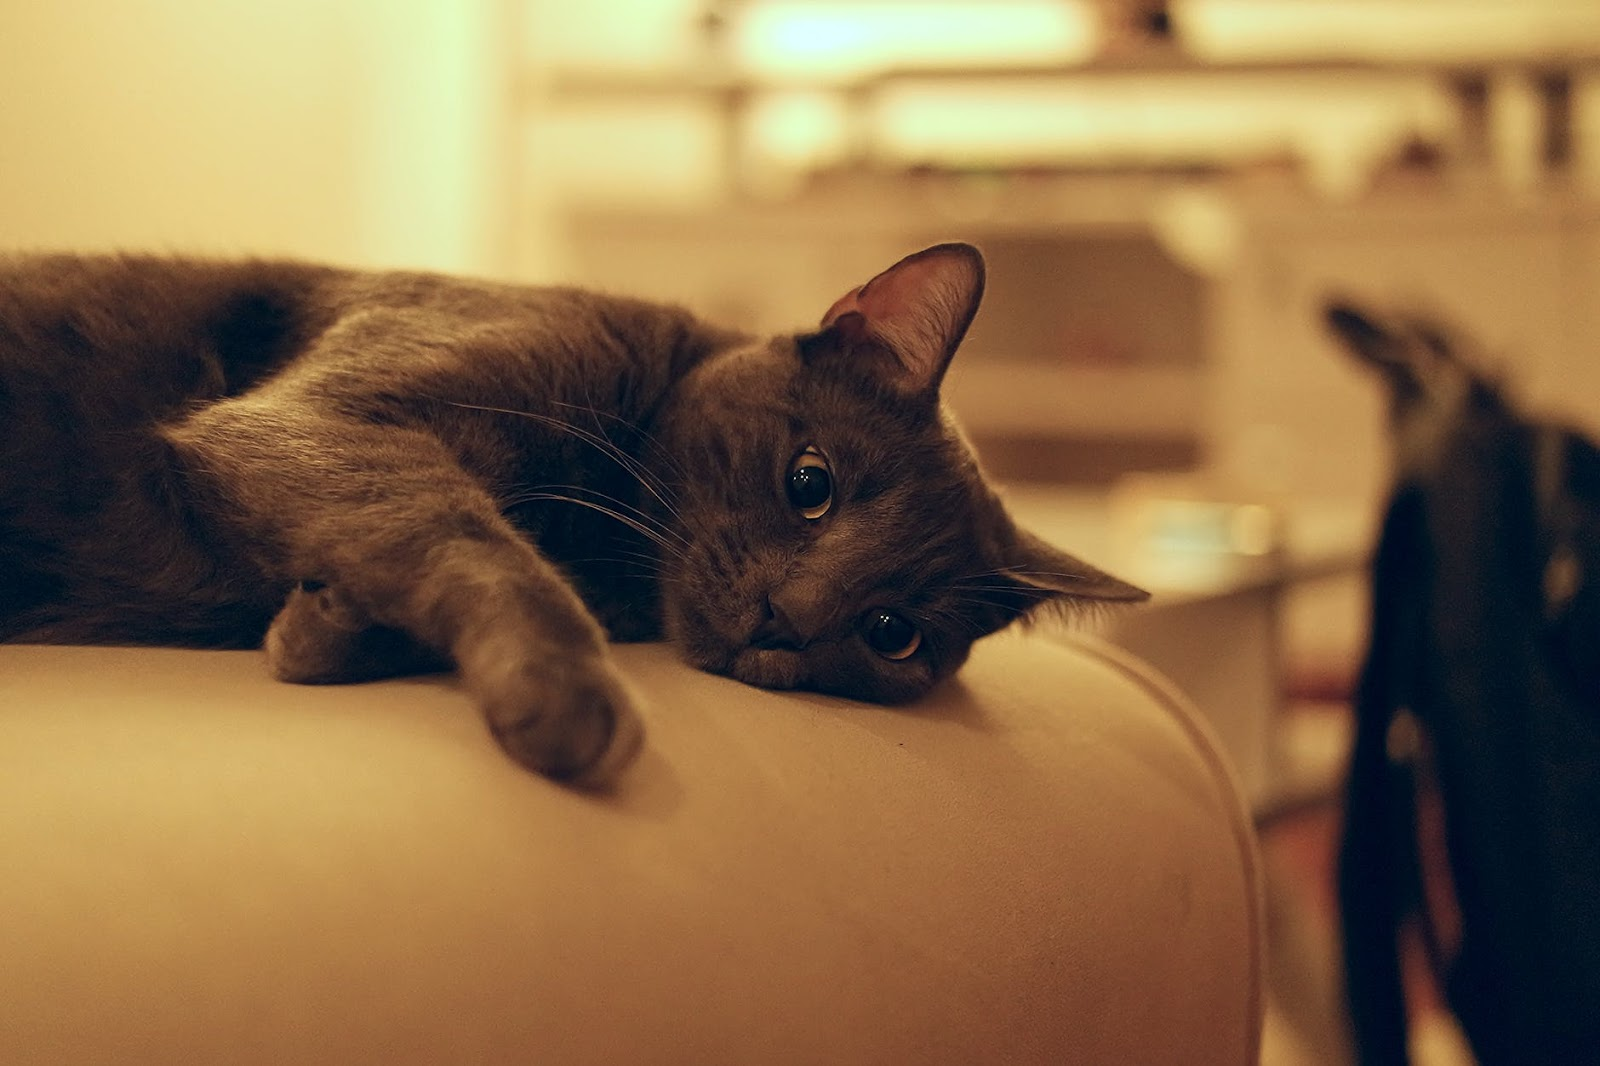 a gray kitty lounging on a sofa